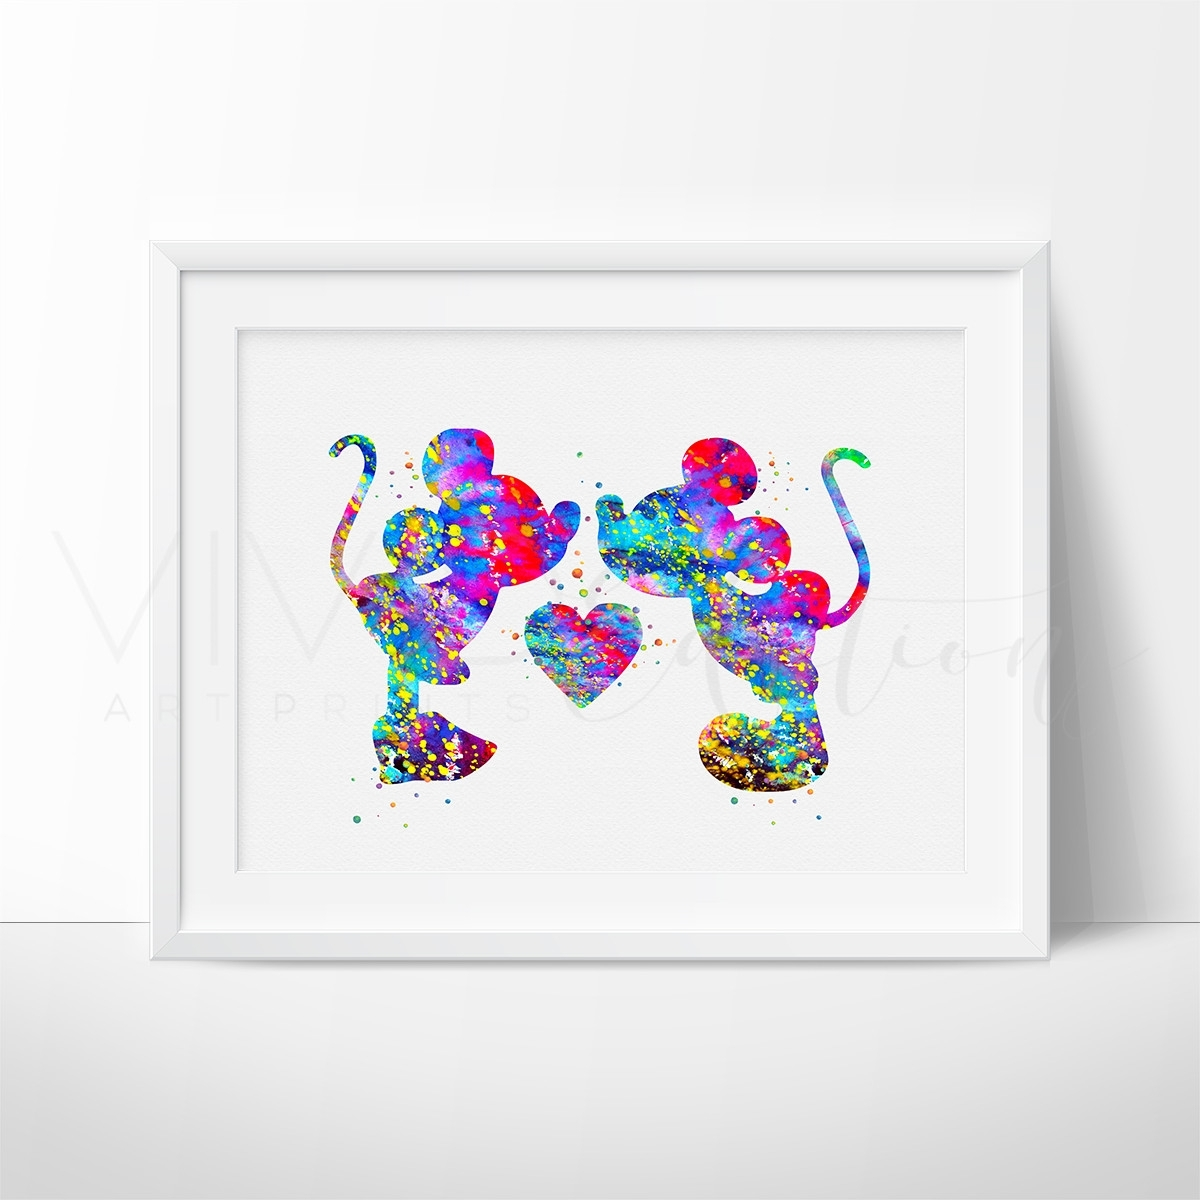 Mickey & Minnie Mouse Watercolor Art Print | Watercolor Images Within Best And Newest Mickey Mouse Canvas Wall Art (Gallery 14 of 15)